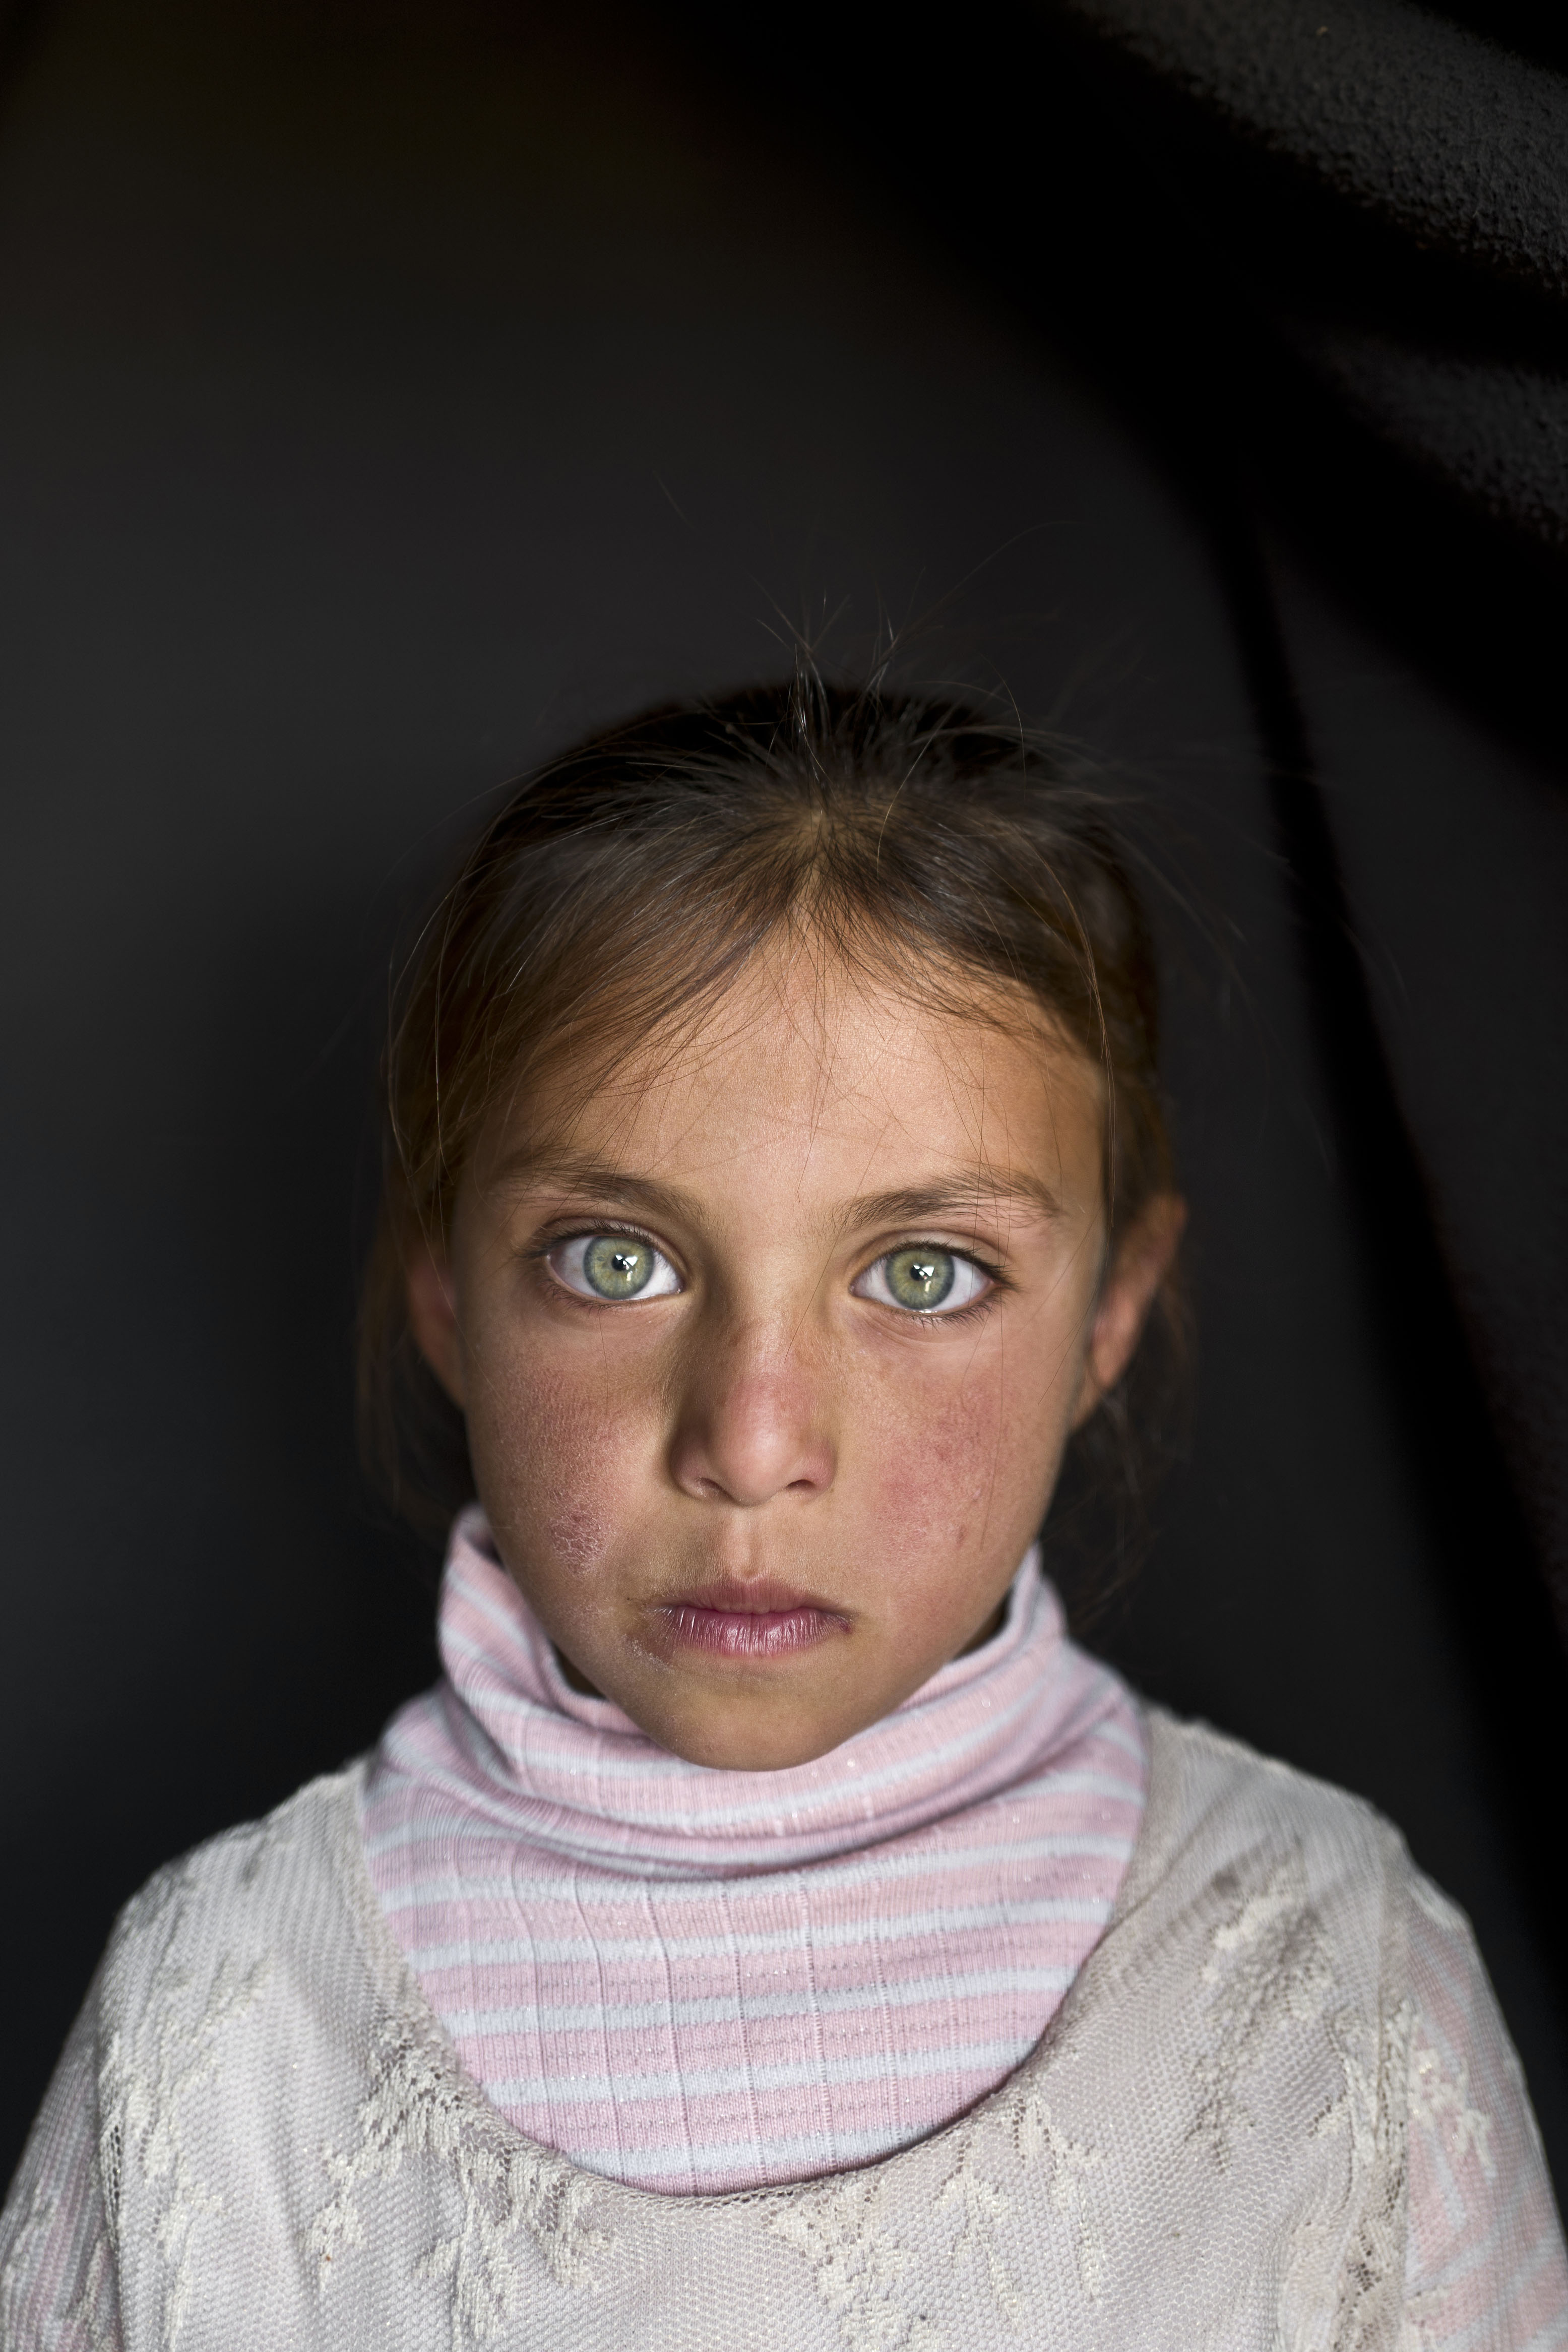 <strong>Aya Bandar</strong>, 6, from Hama, in March 2016.